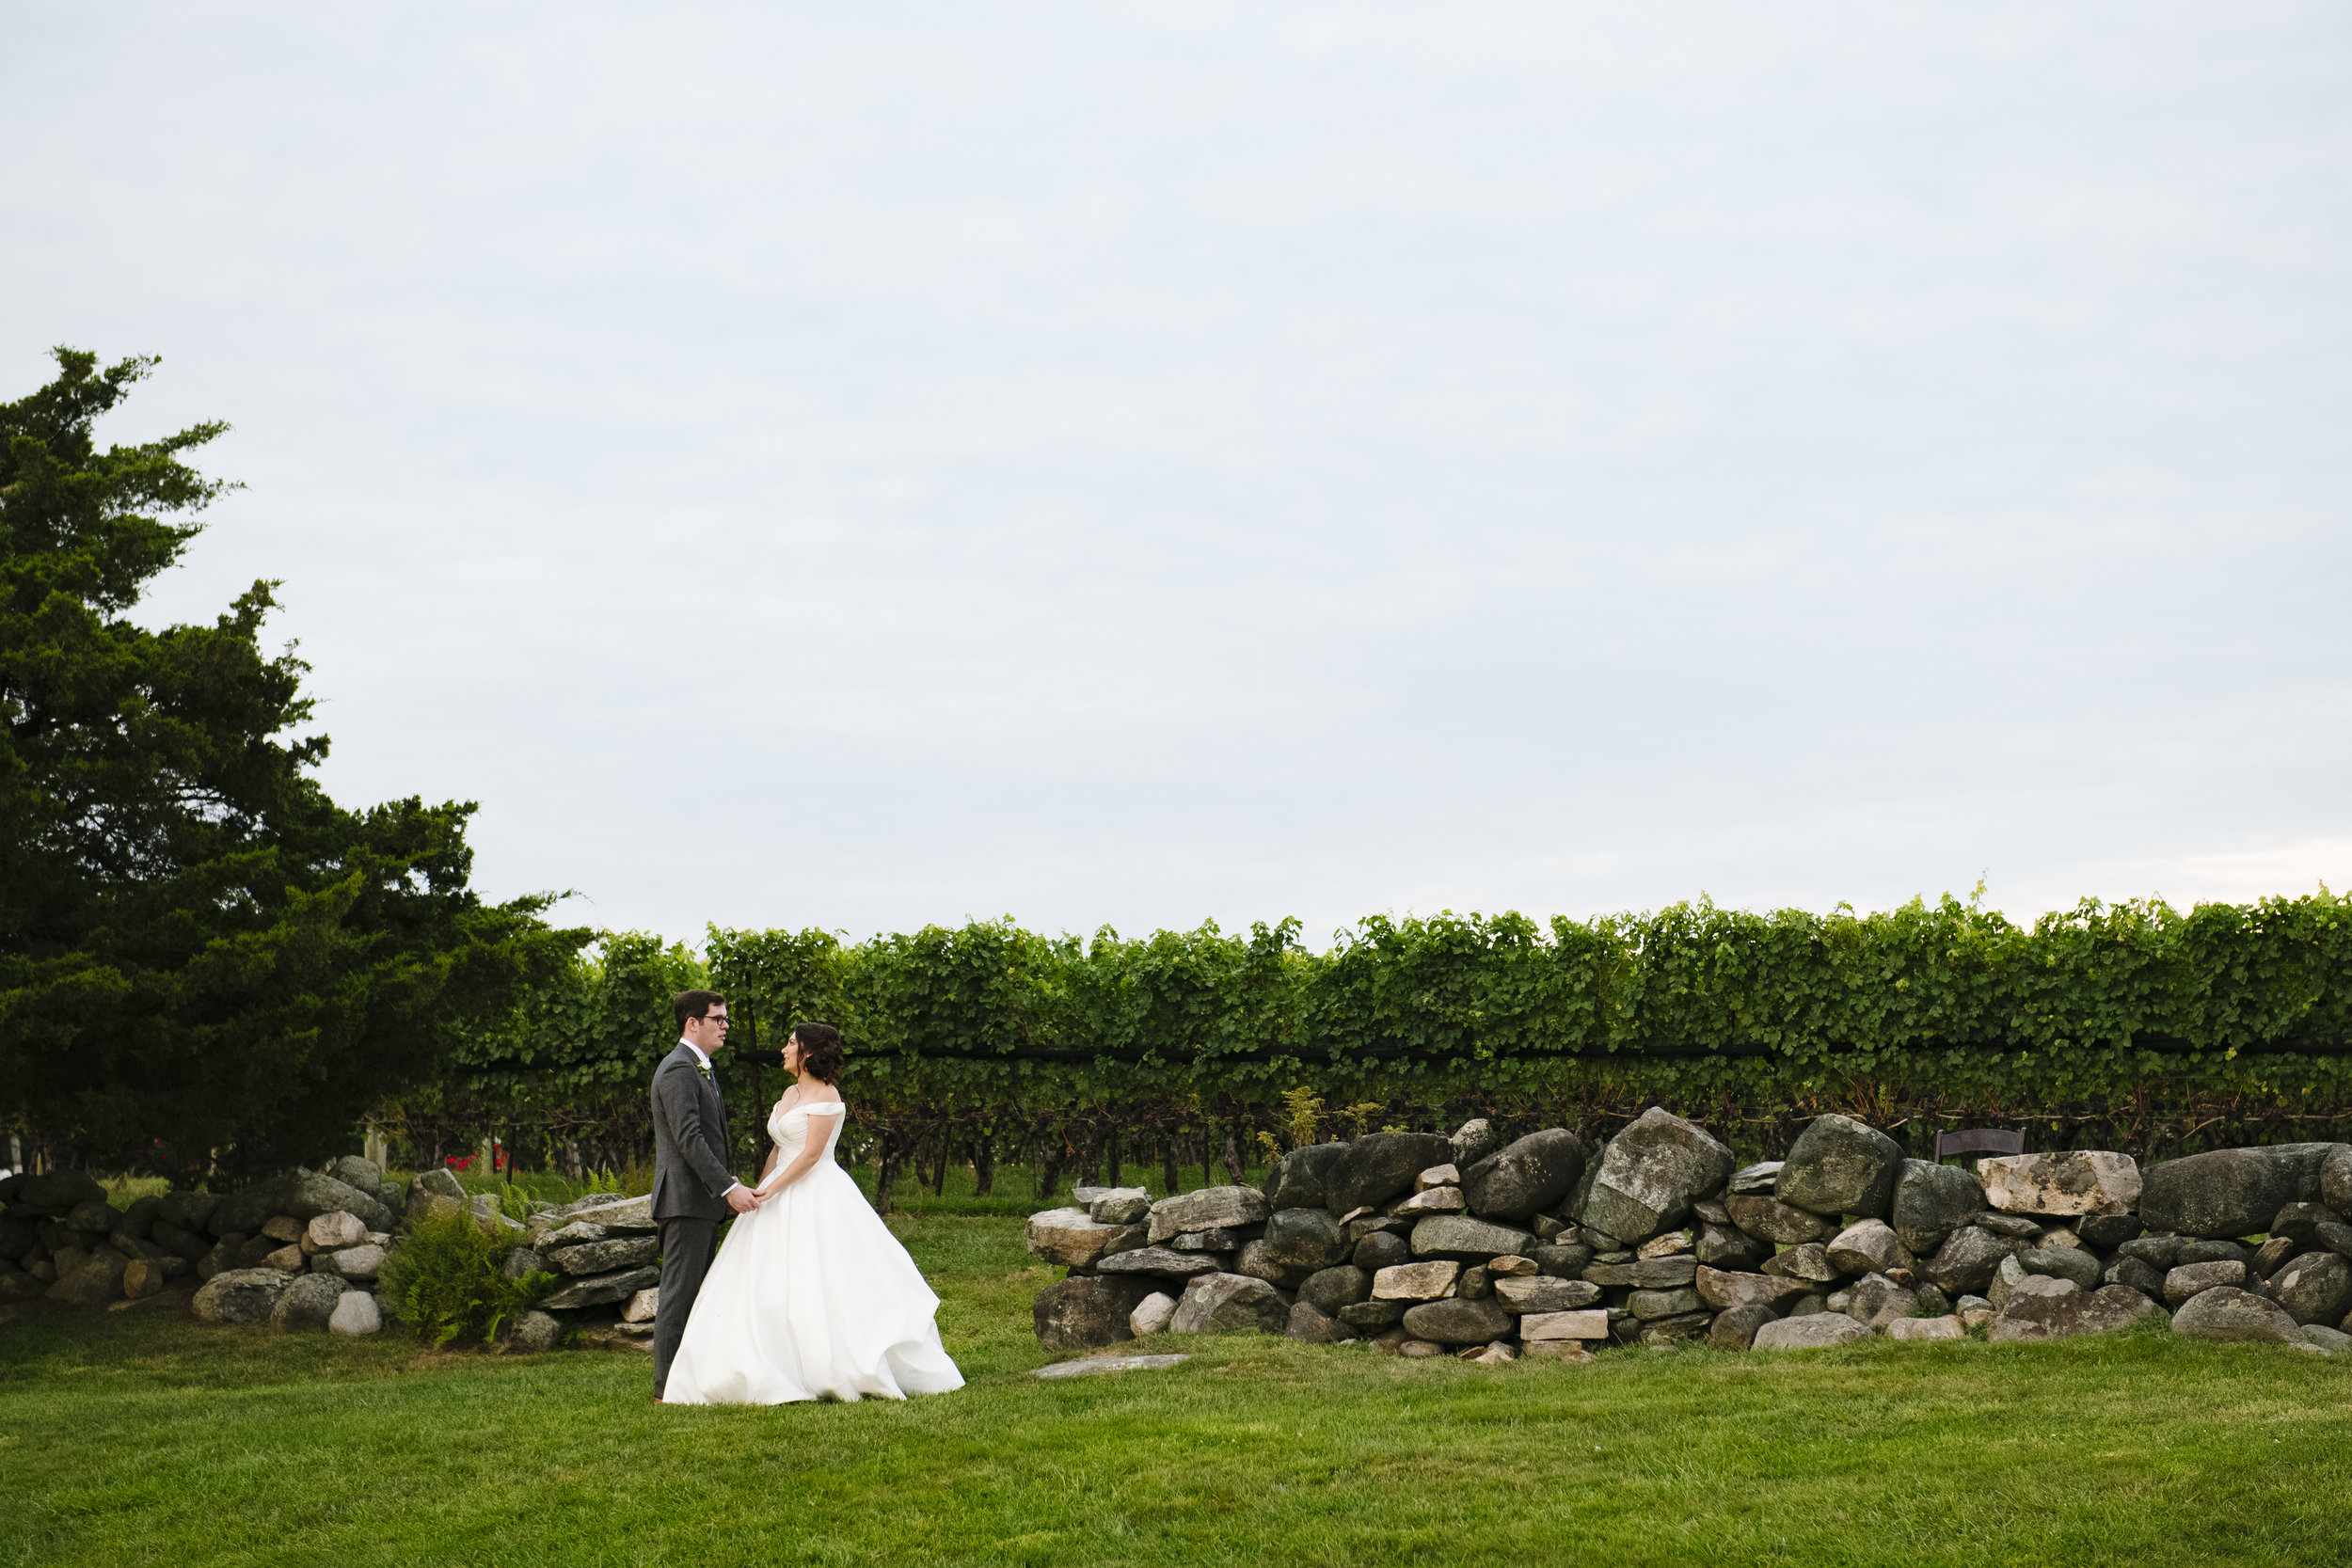 Bride and groom getting married at Jonathan Edwards Winery in Connecticut - Pearl Weddings & Events